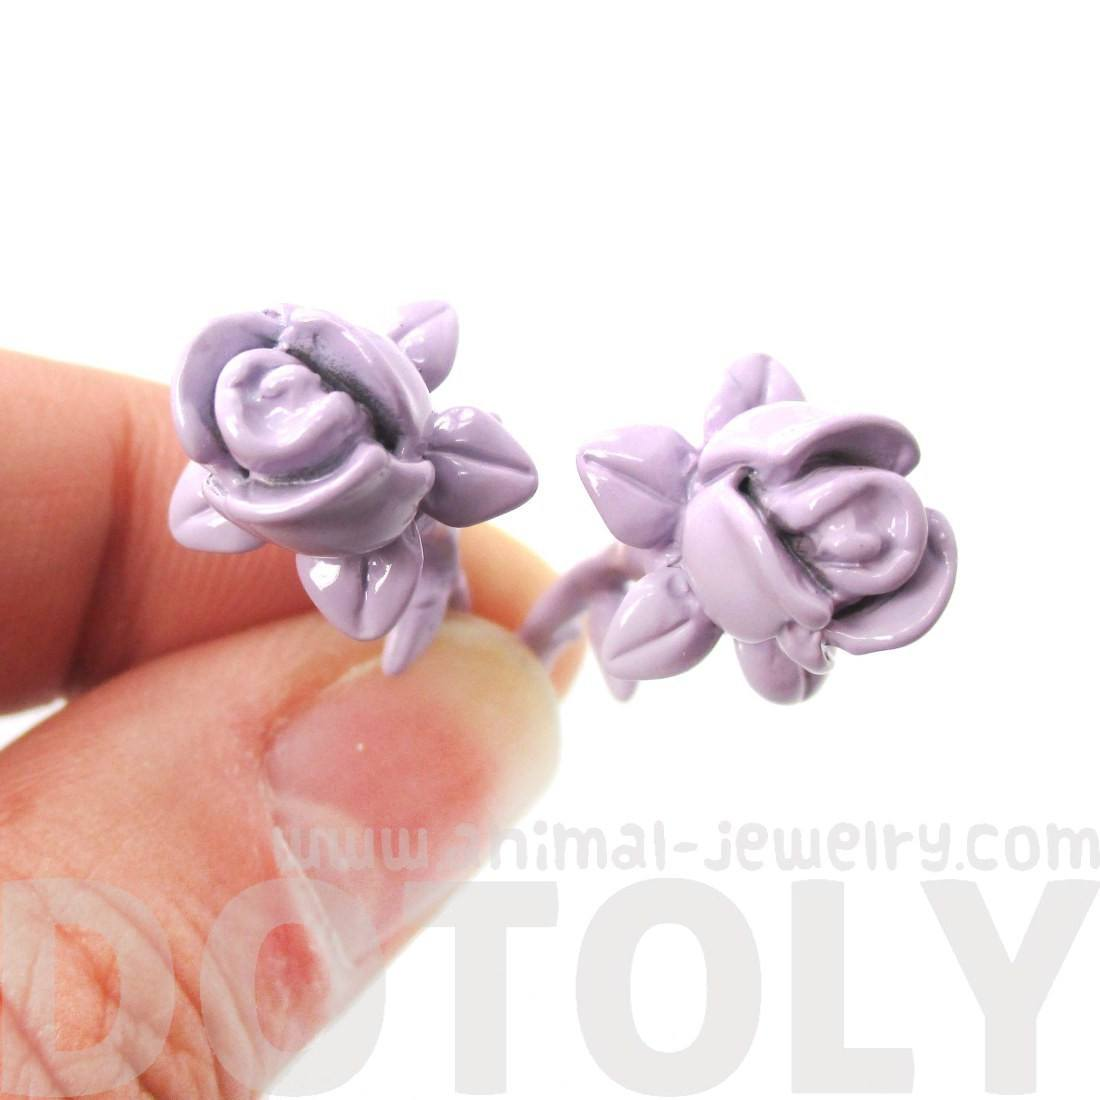 3D Rose Floral Flower Shaped Front and Back Stud Earrings in Purple